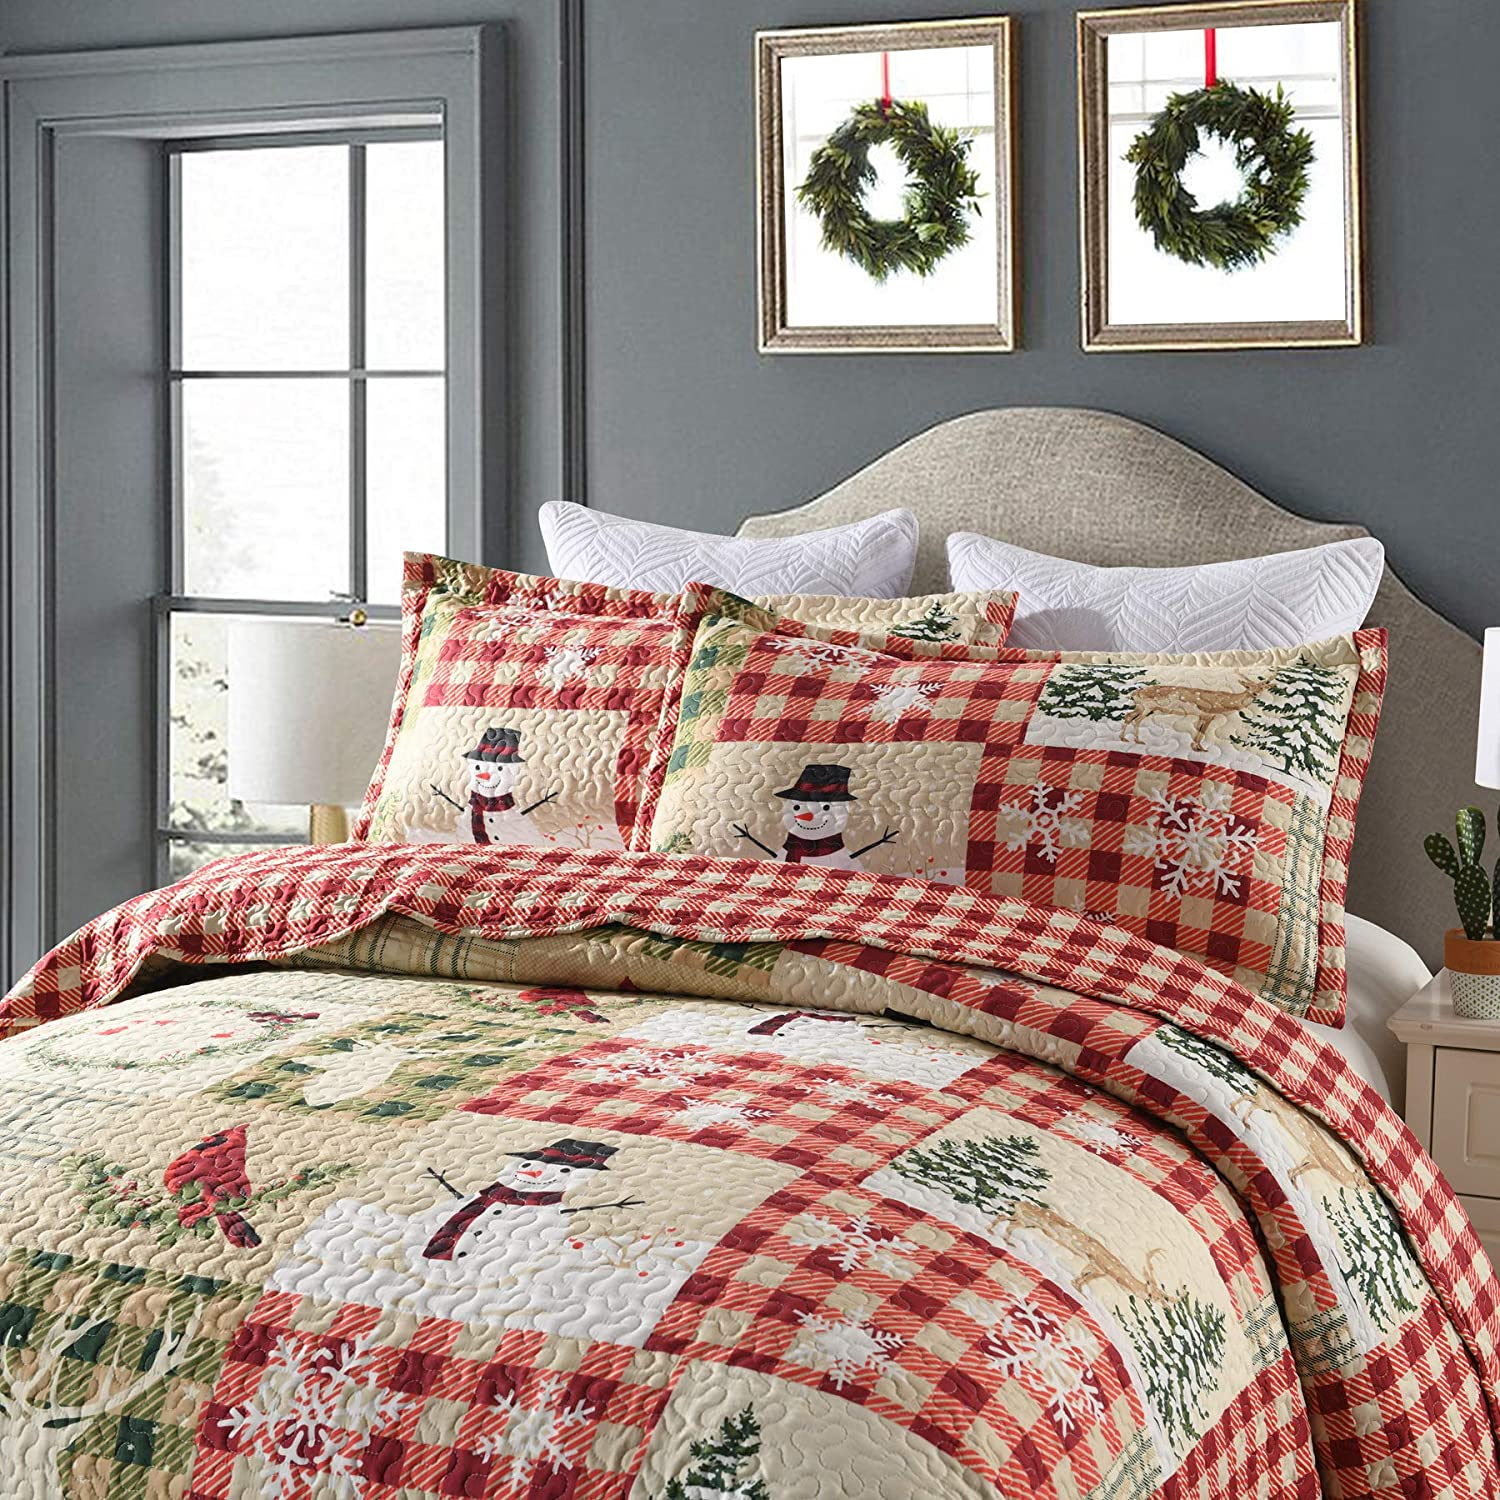 Quilt Set Bedding Throw Blanket Coverlet Lightweight Bedspread Ensemble/Snowman Quilt (King)